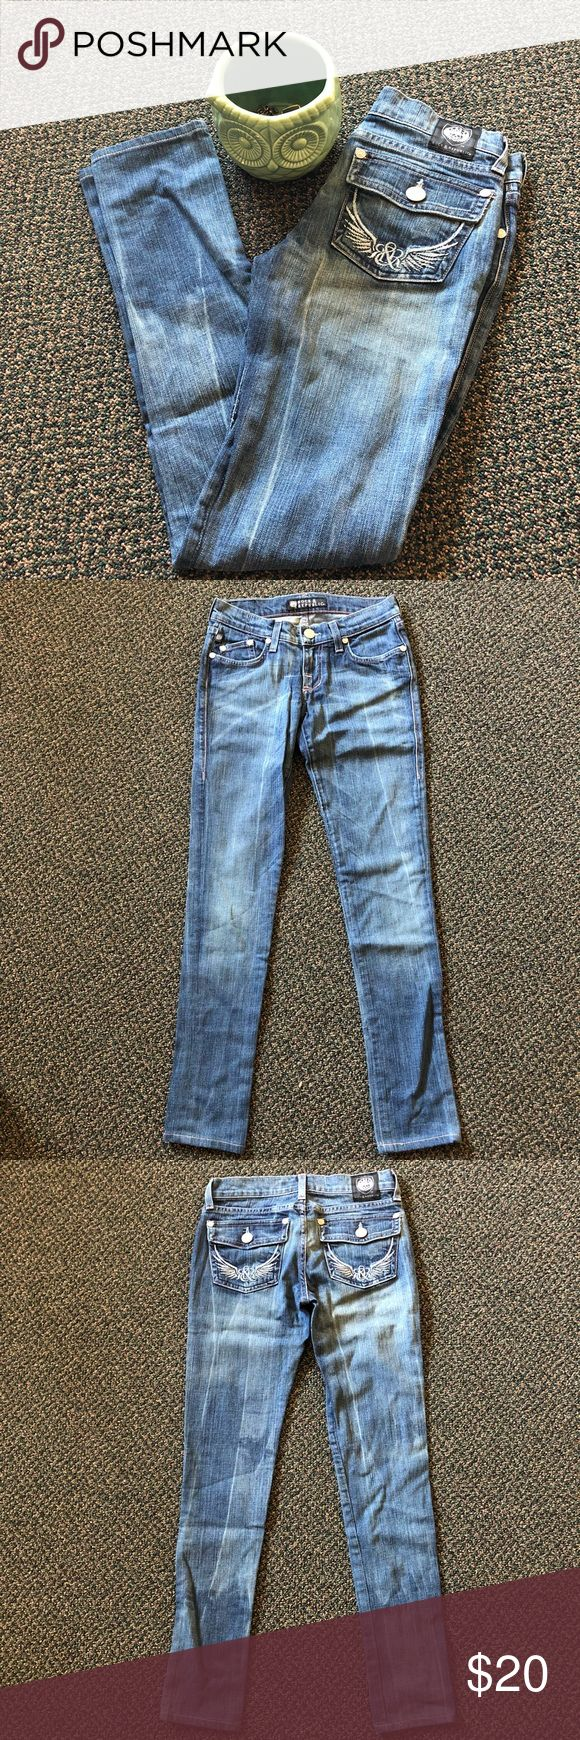 Rock & Republic Jeans Really nice skinny jeans in excellent condition by Rock and Republic. Size: 24 x 30 inches. Materials: 98% cotton, 2% spandex. Rock & Republic Jeans Skinny